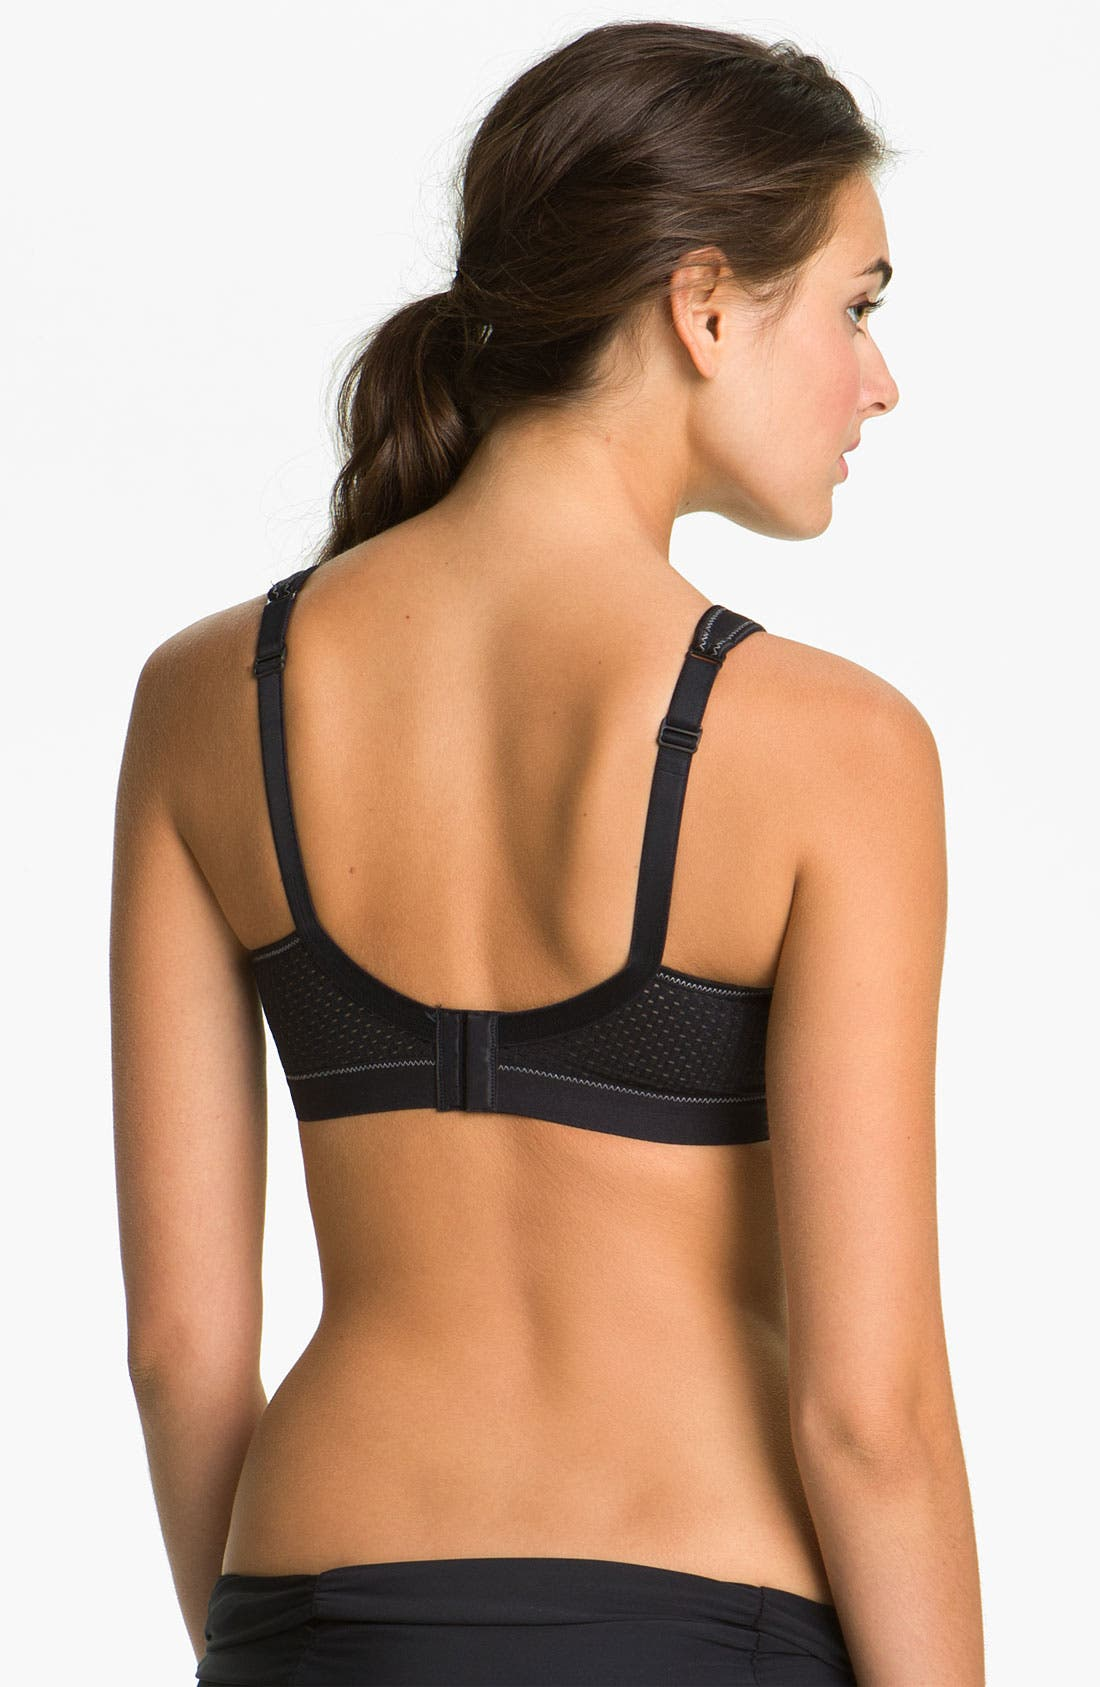 Alternate Image 2  - Anita 'Momentum' Wireless Sports Bra (D Cup & Up)